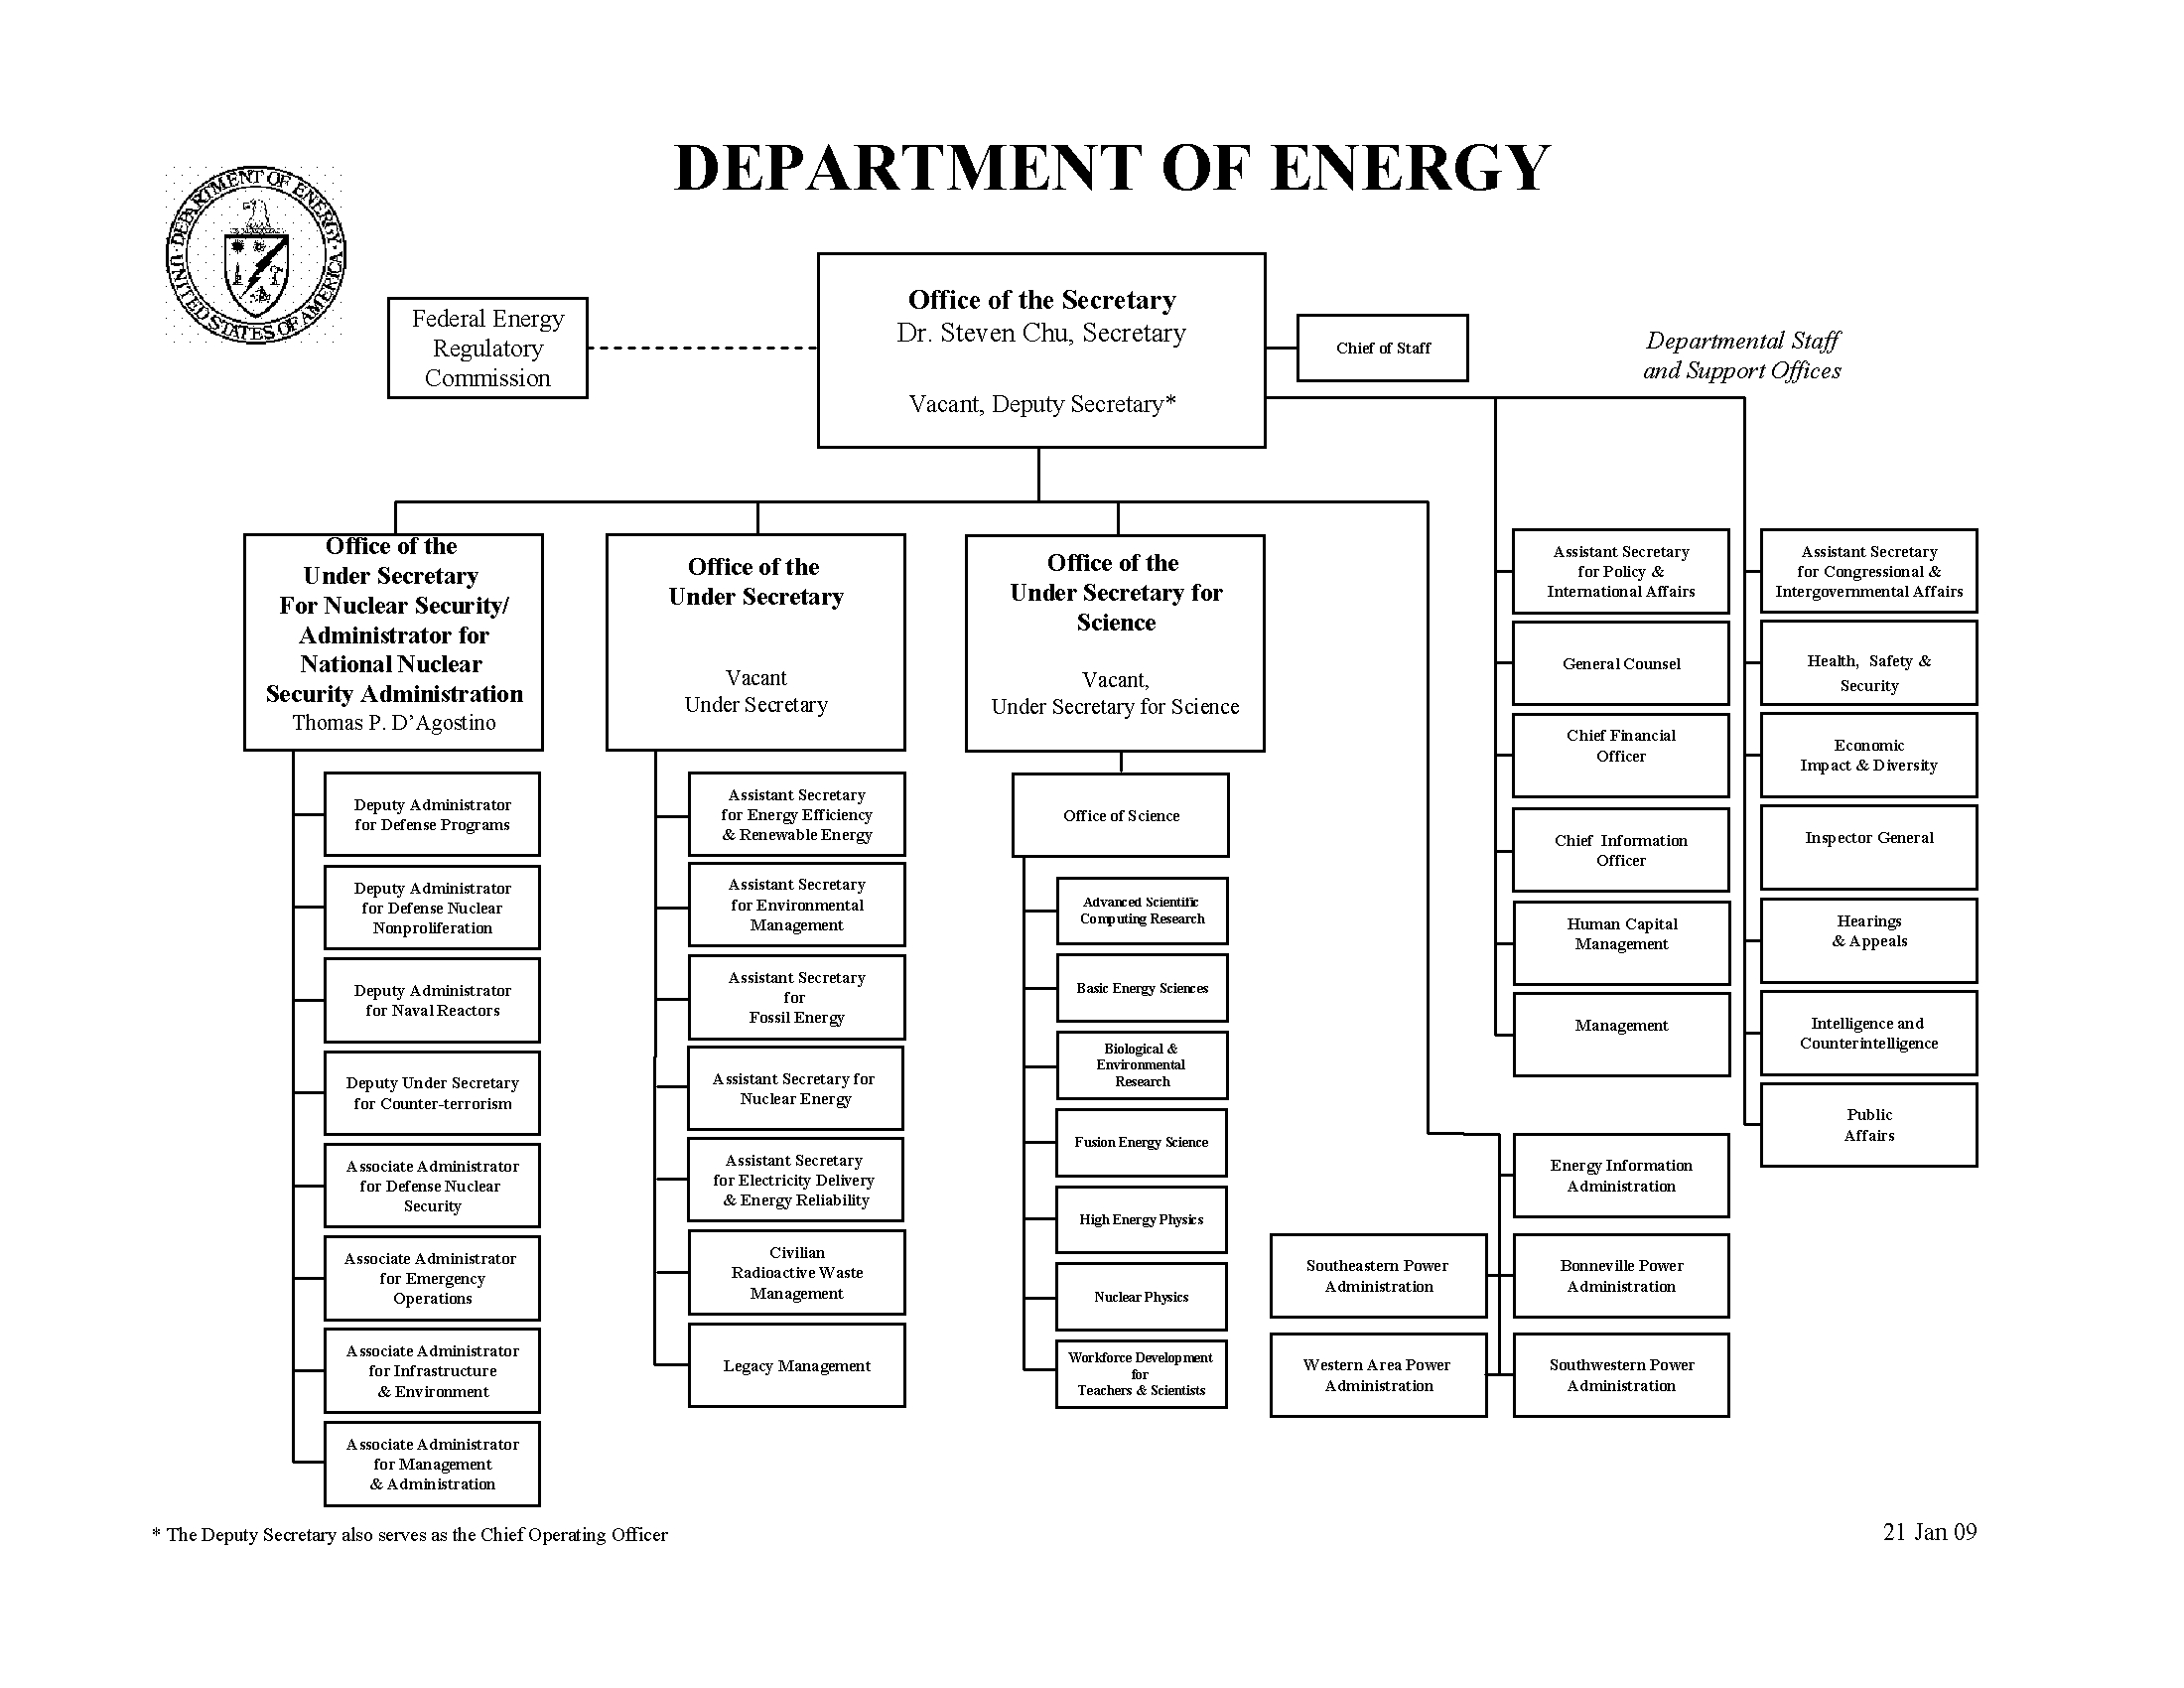 Create Organizational Chart In Word: DOE Org Chart.jpg - Wikimedia Commons,Chart